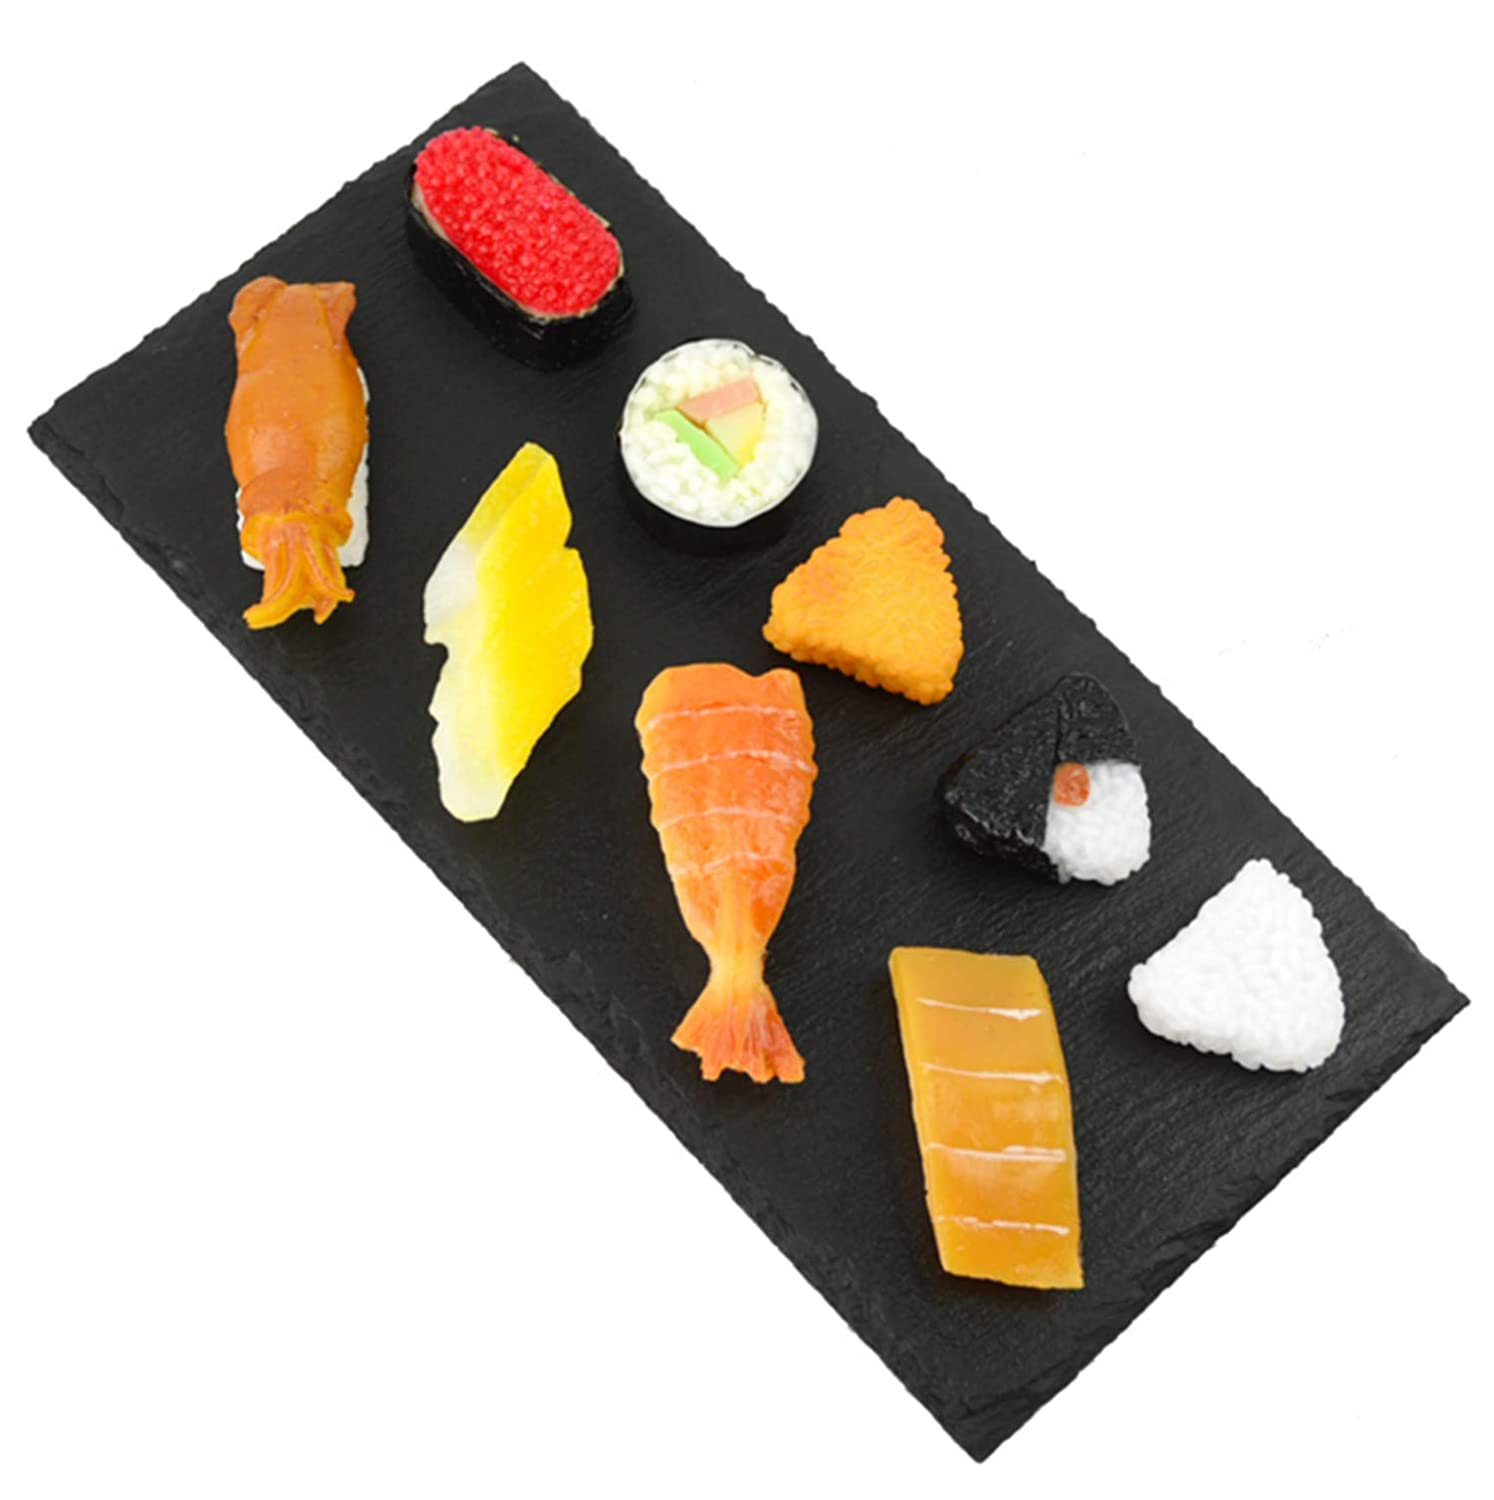 Skyseen 9Pcs Artificial Sushi Fake Food Simulation Realistic Lifelike Salmon Dessert for Decoration Display Toy Props Model Sashimi